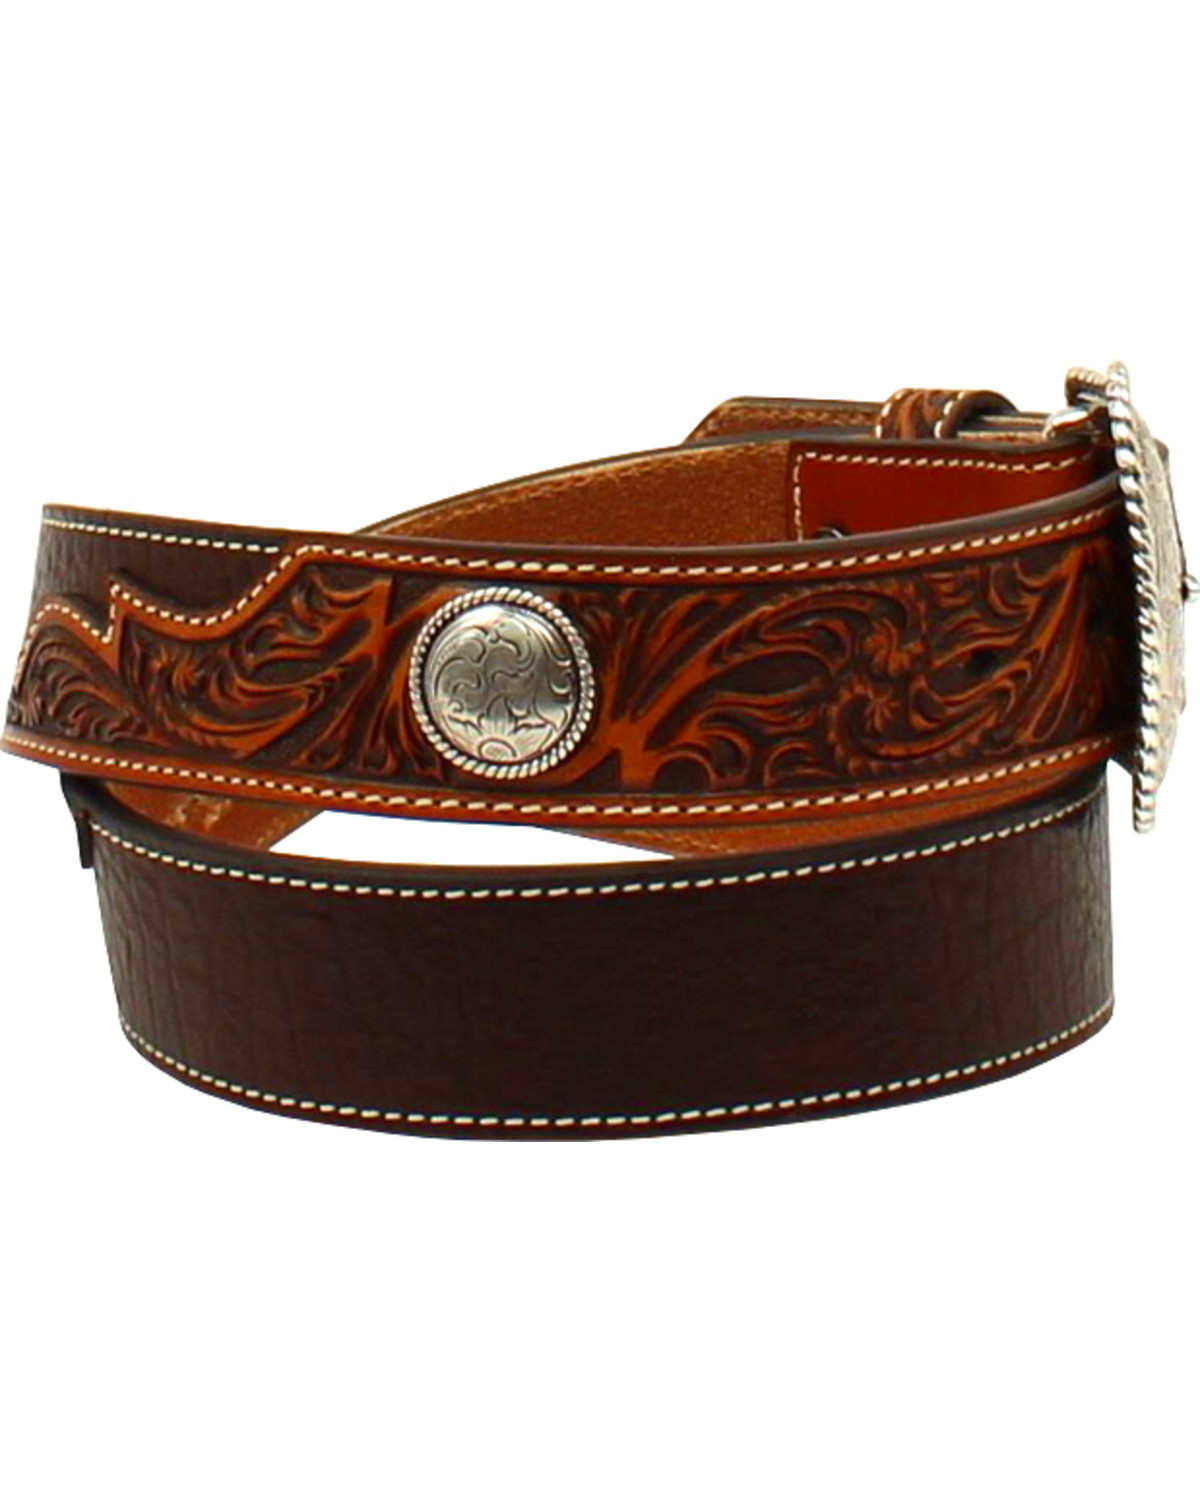 concho men The bcg™ men's concho belt is made of polyurethane for long-lasting use.